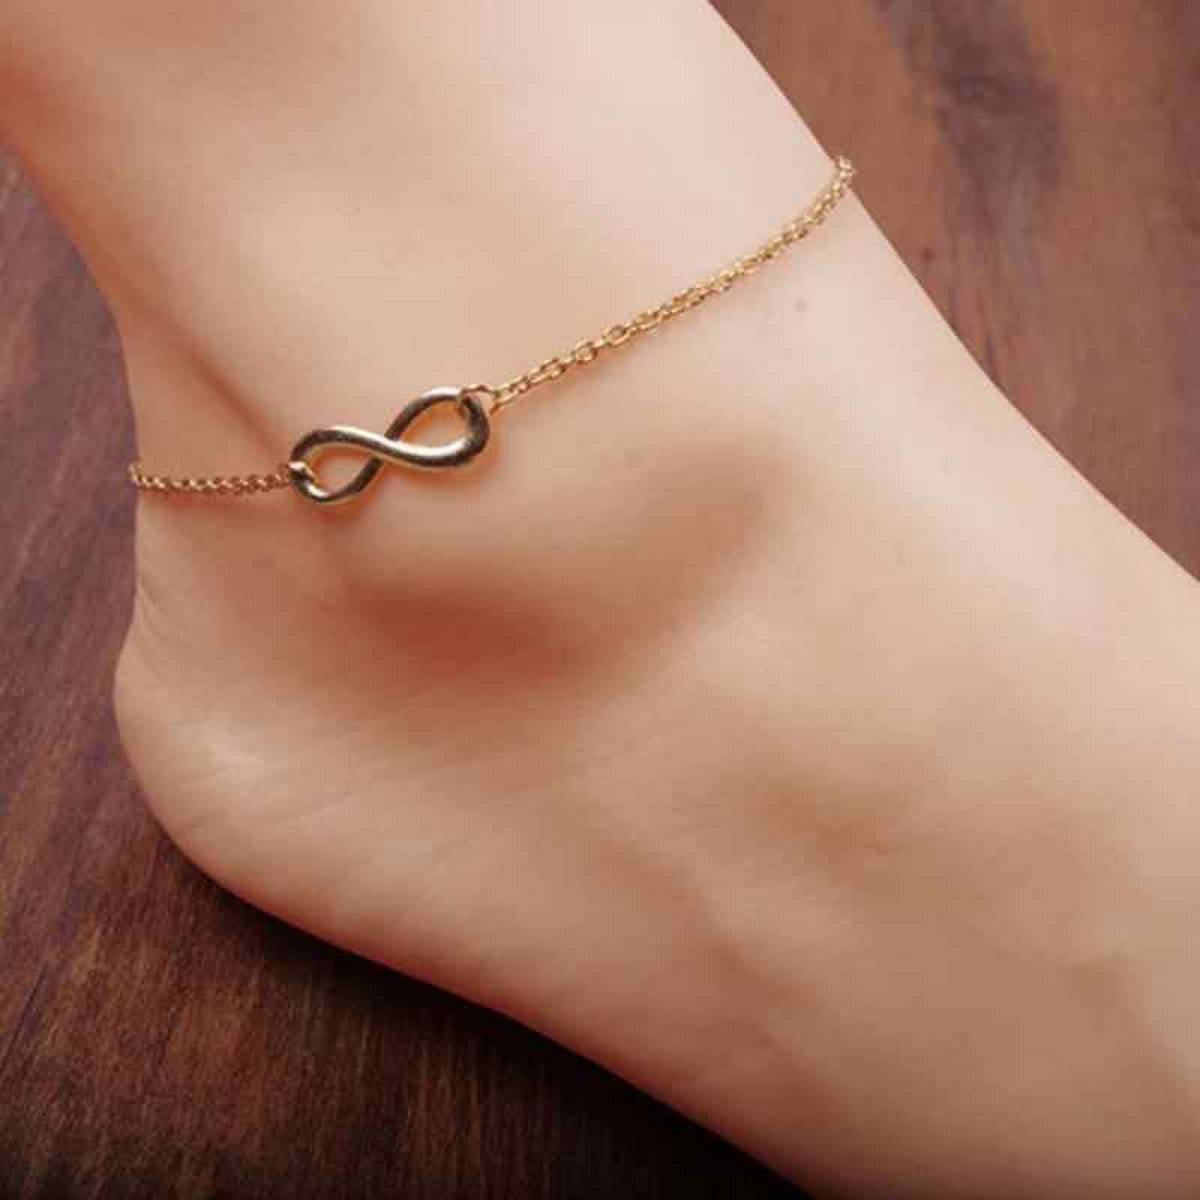 Stylish Gold Infinity Charm Beach Anklet For Girls & Womens